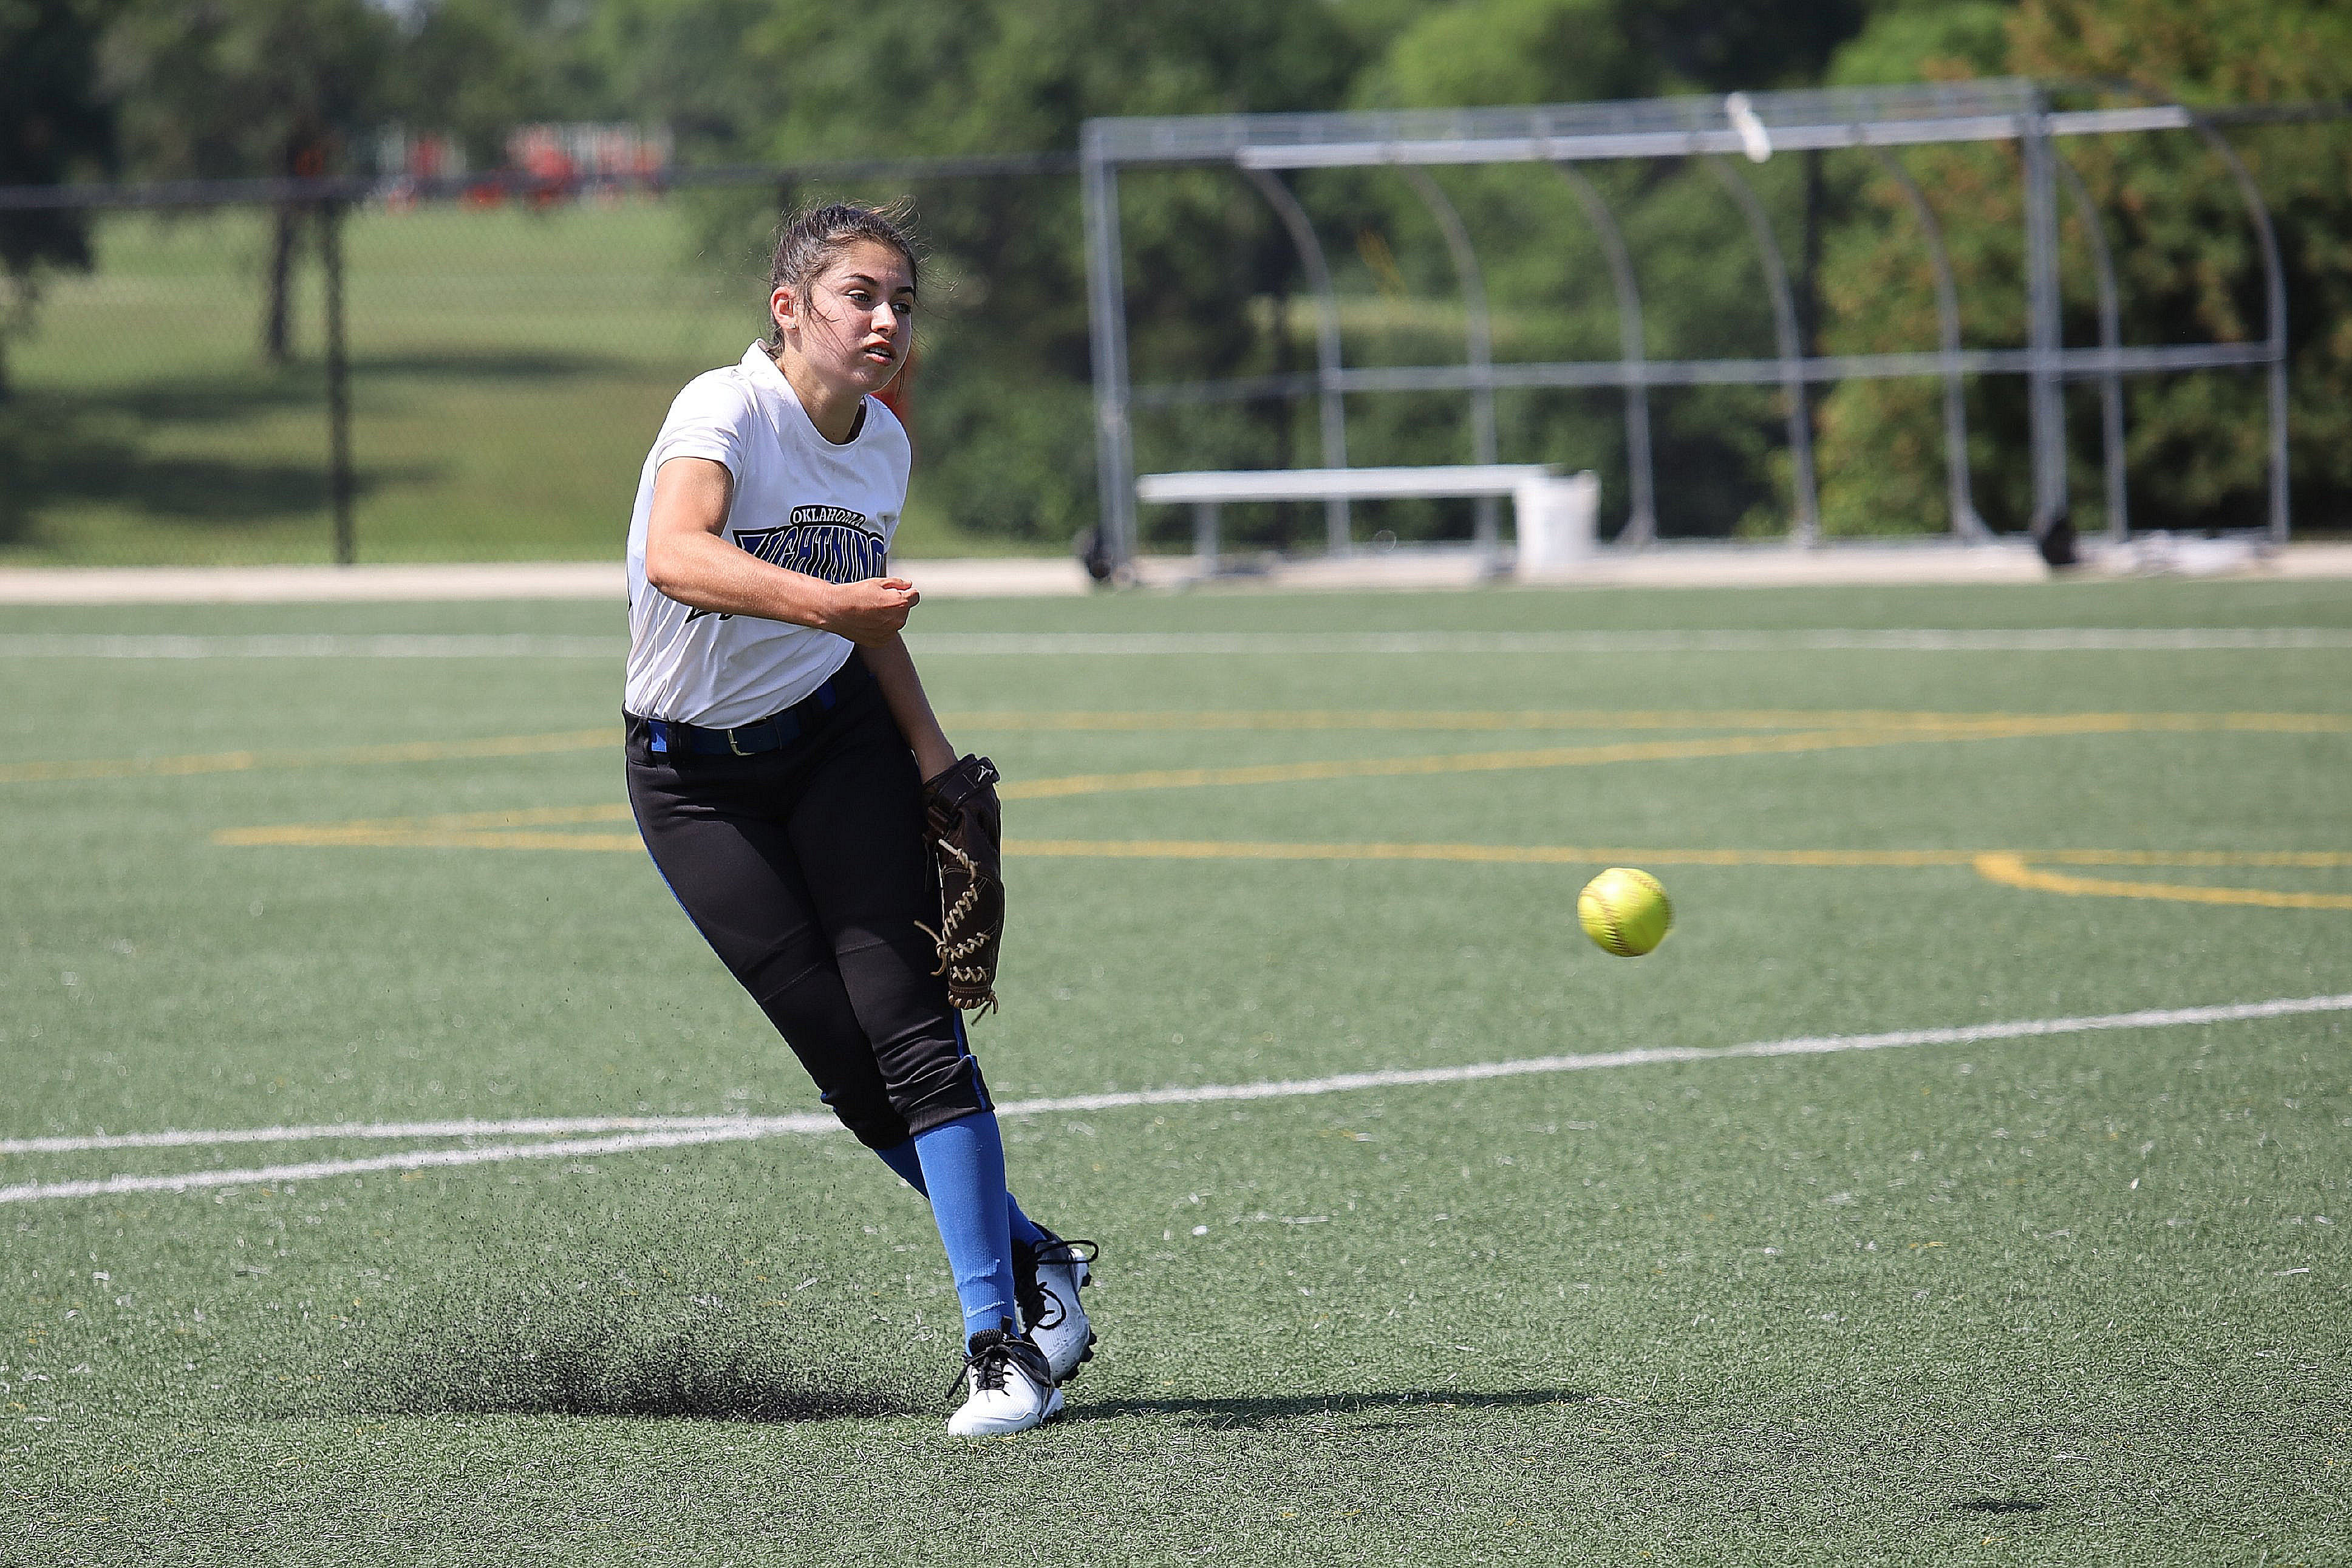 Fastpitch Softball Teams play for a National Championship at Lake Shawnee